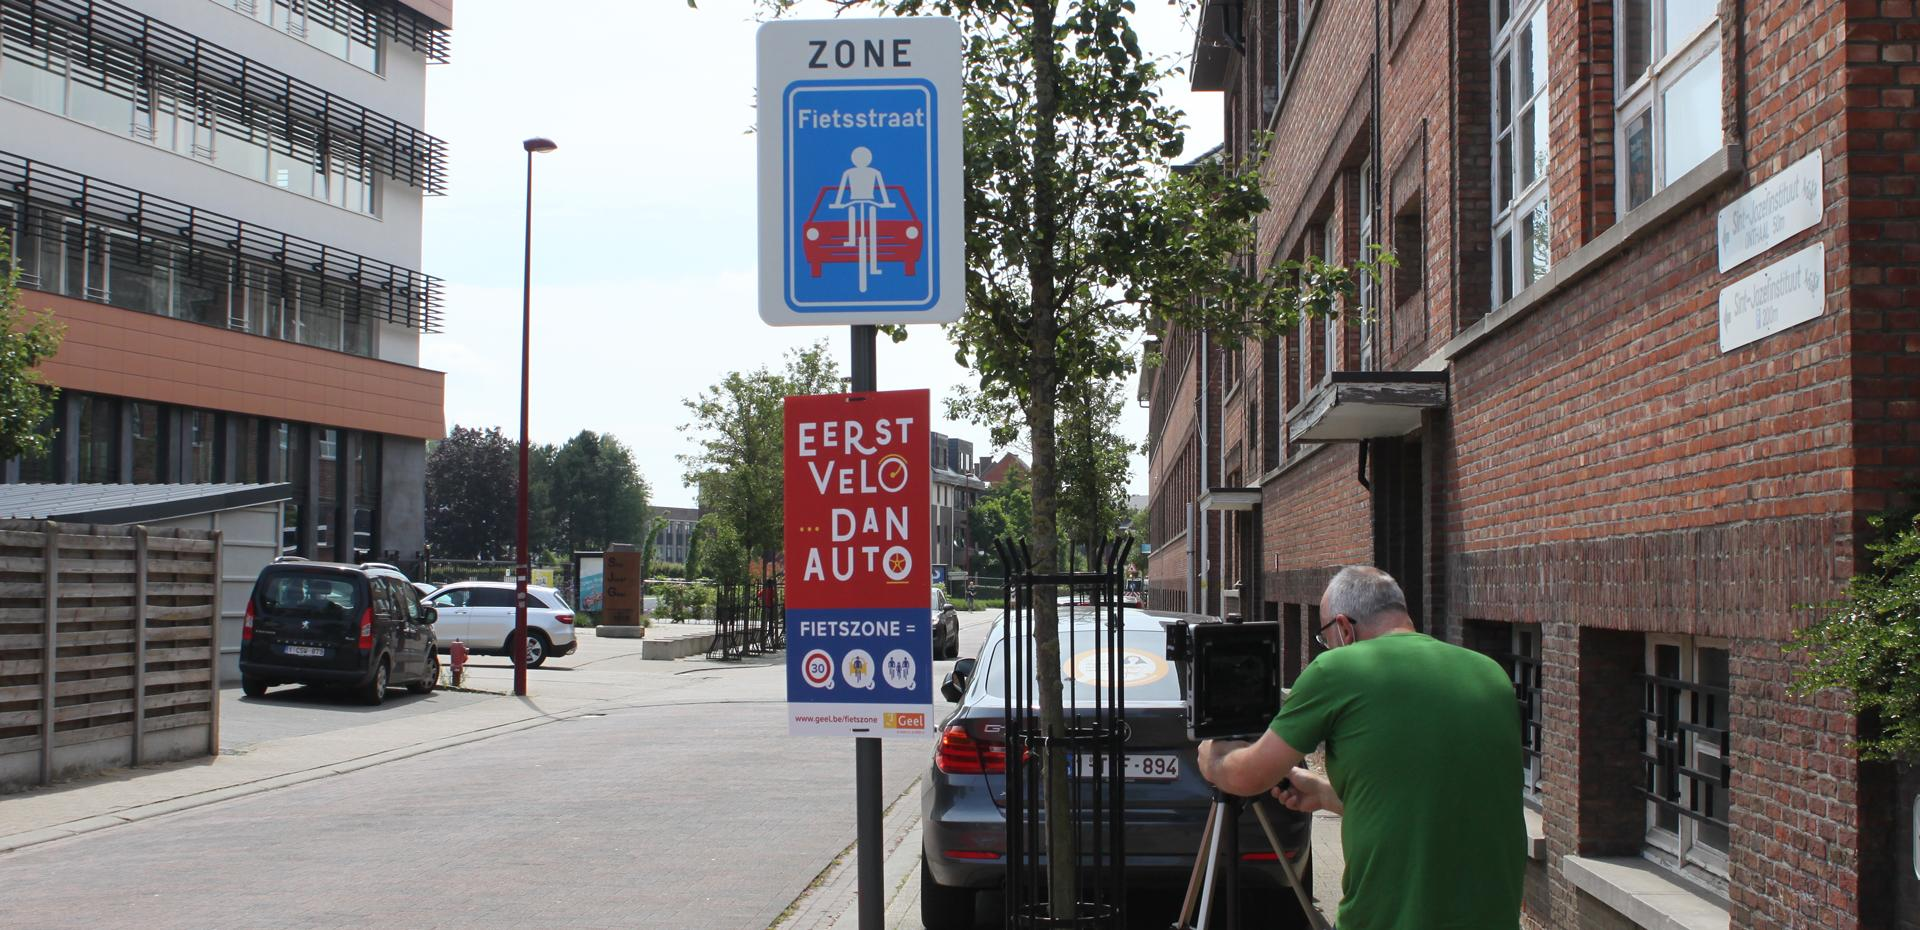 stad Geel fietszone aroma communicatie videomarketing